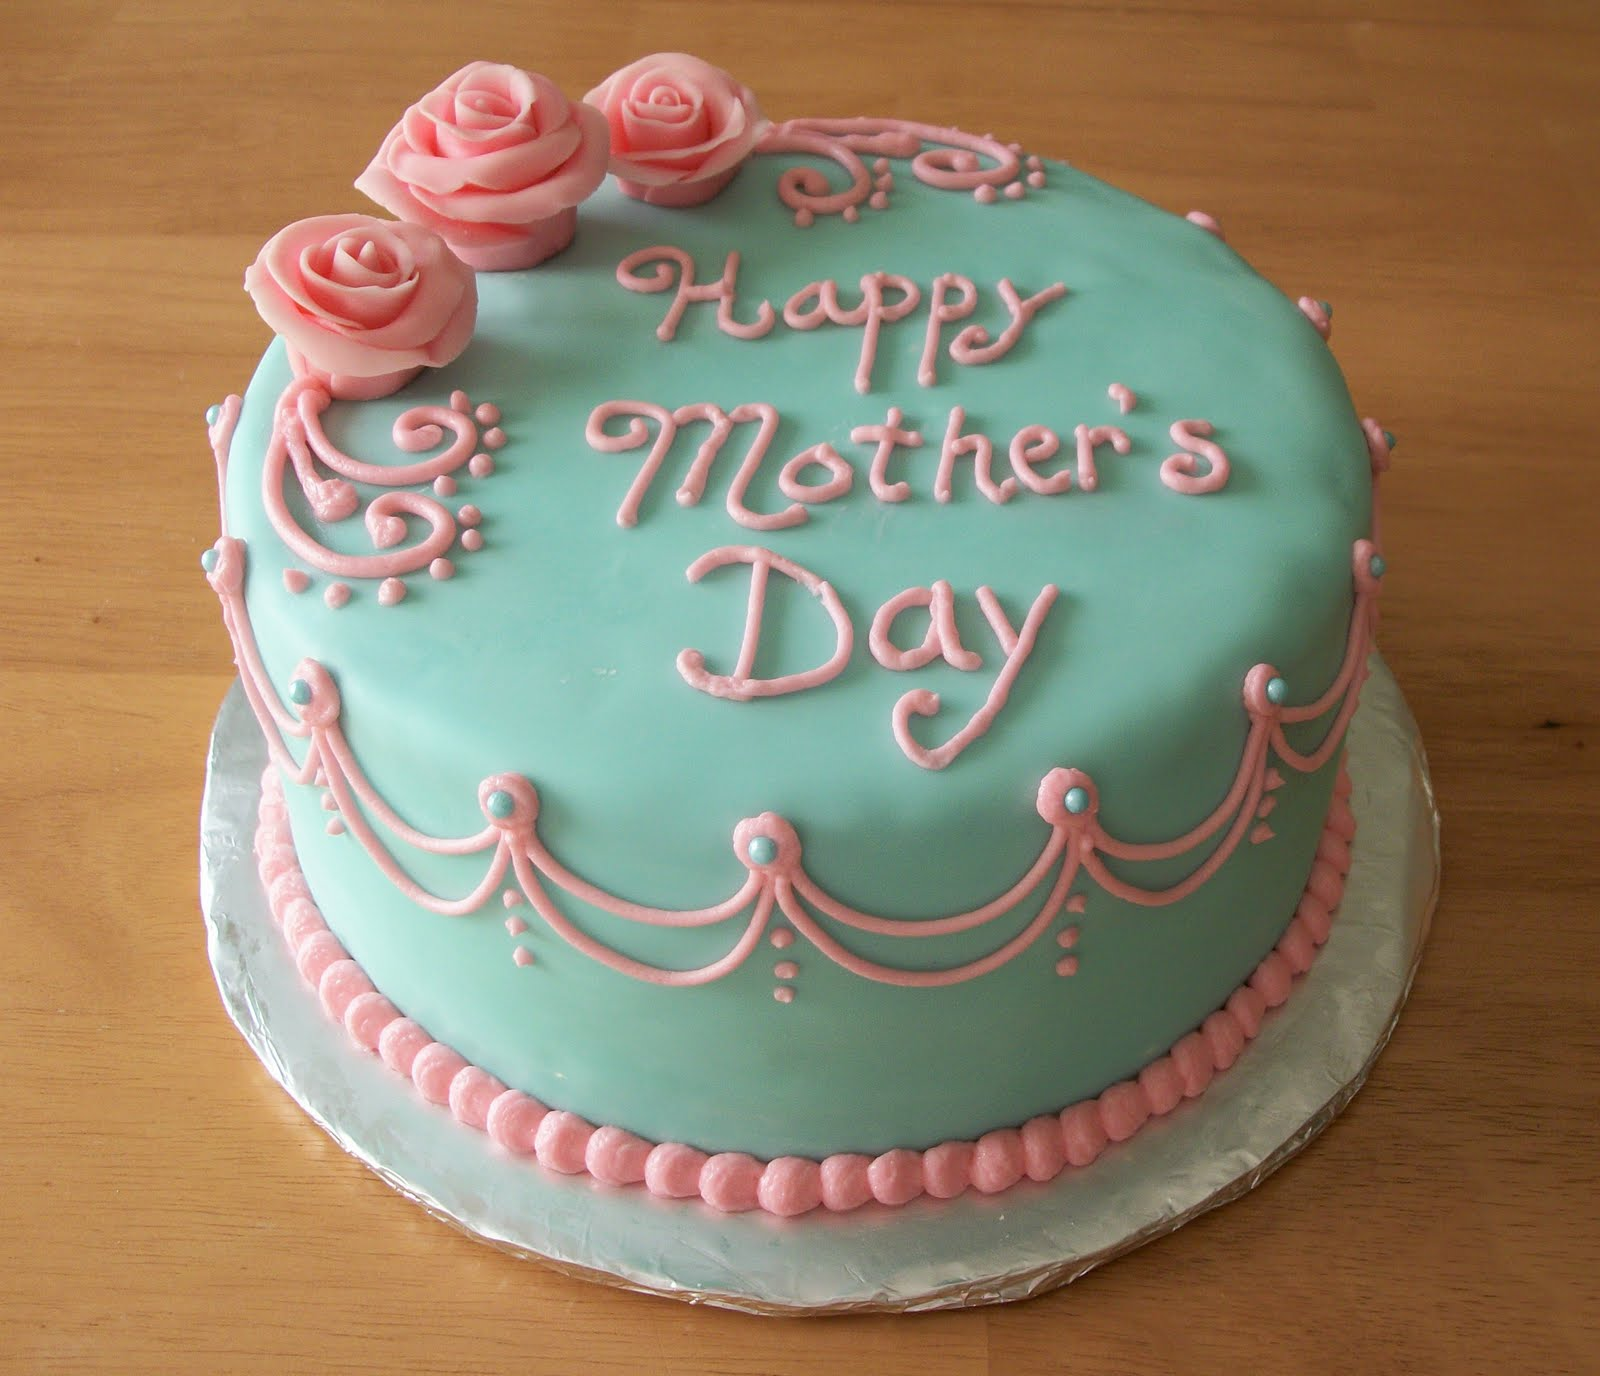 Cake Design For Moms : Cakes: Mother s Day on Pinterest Mothers Day Cake ...